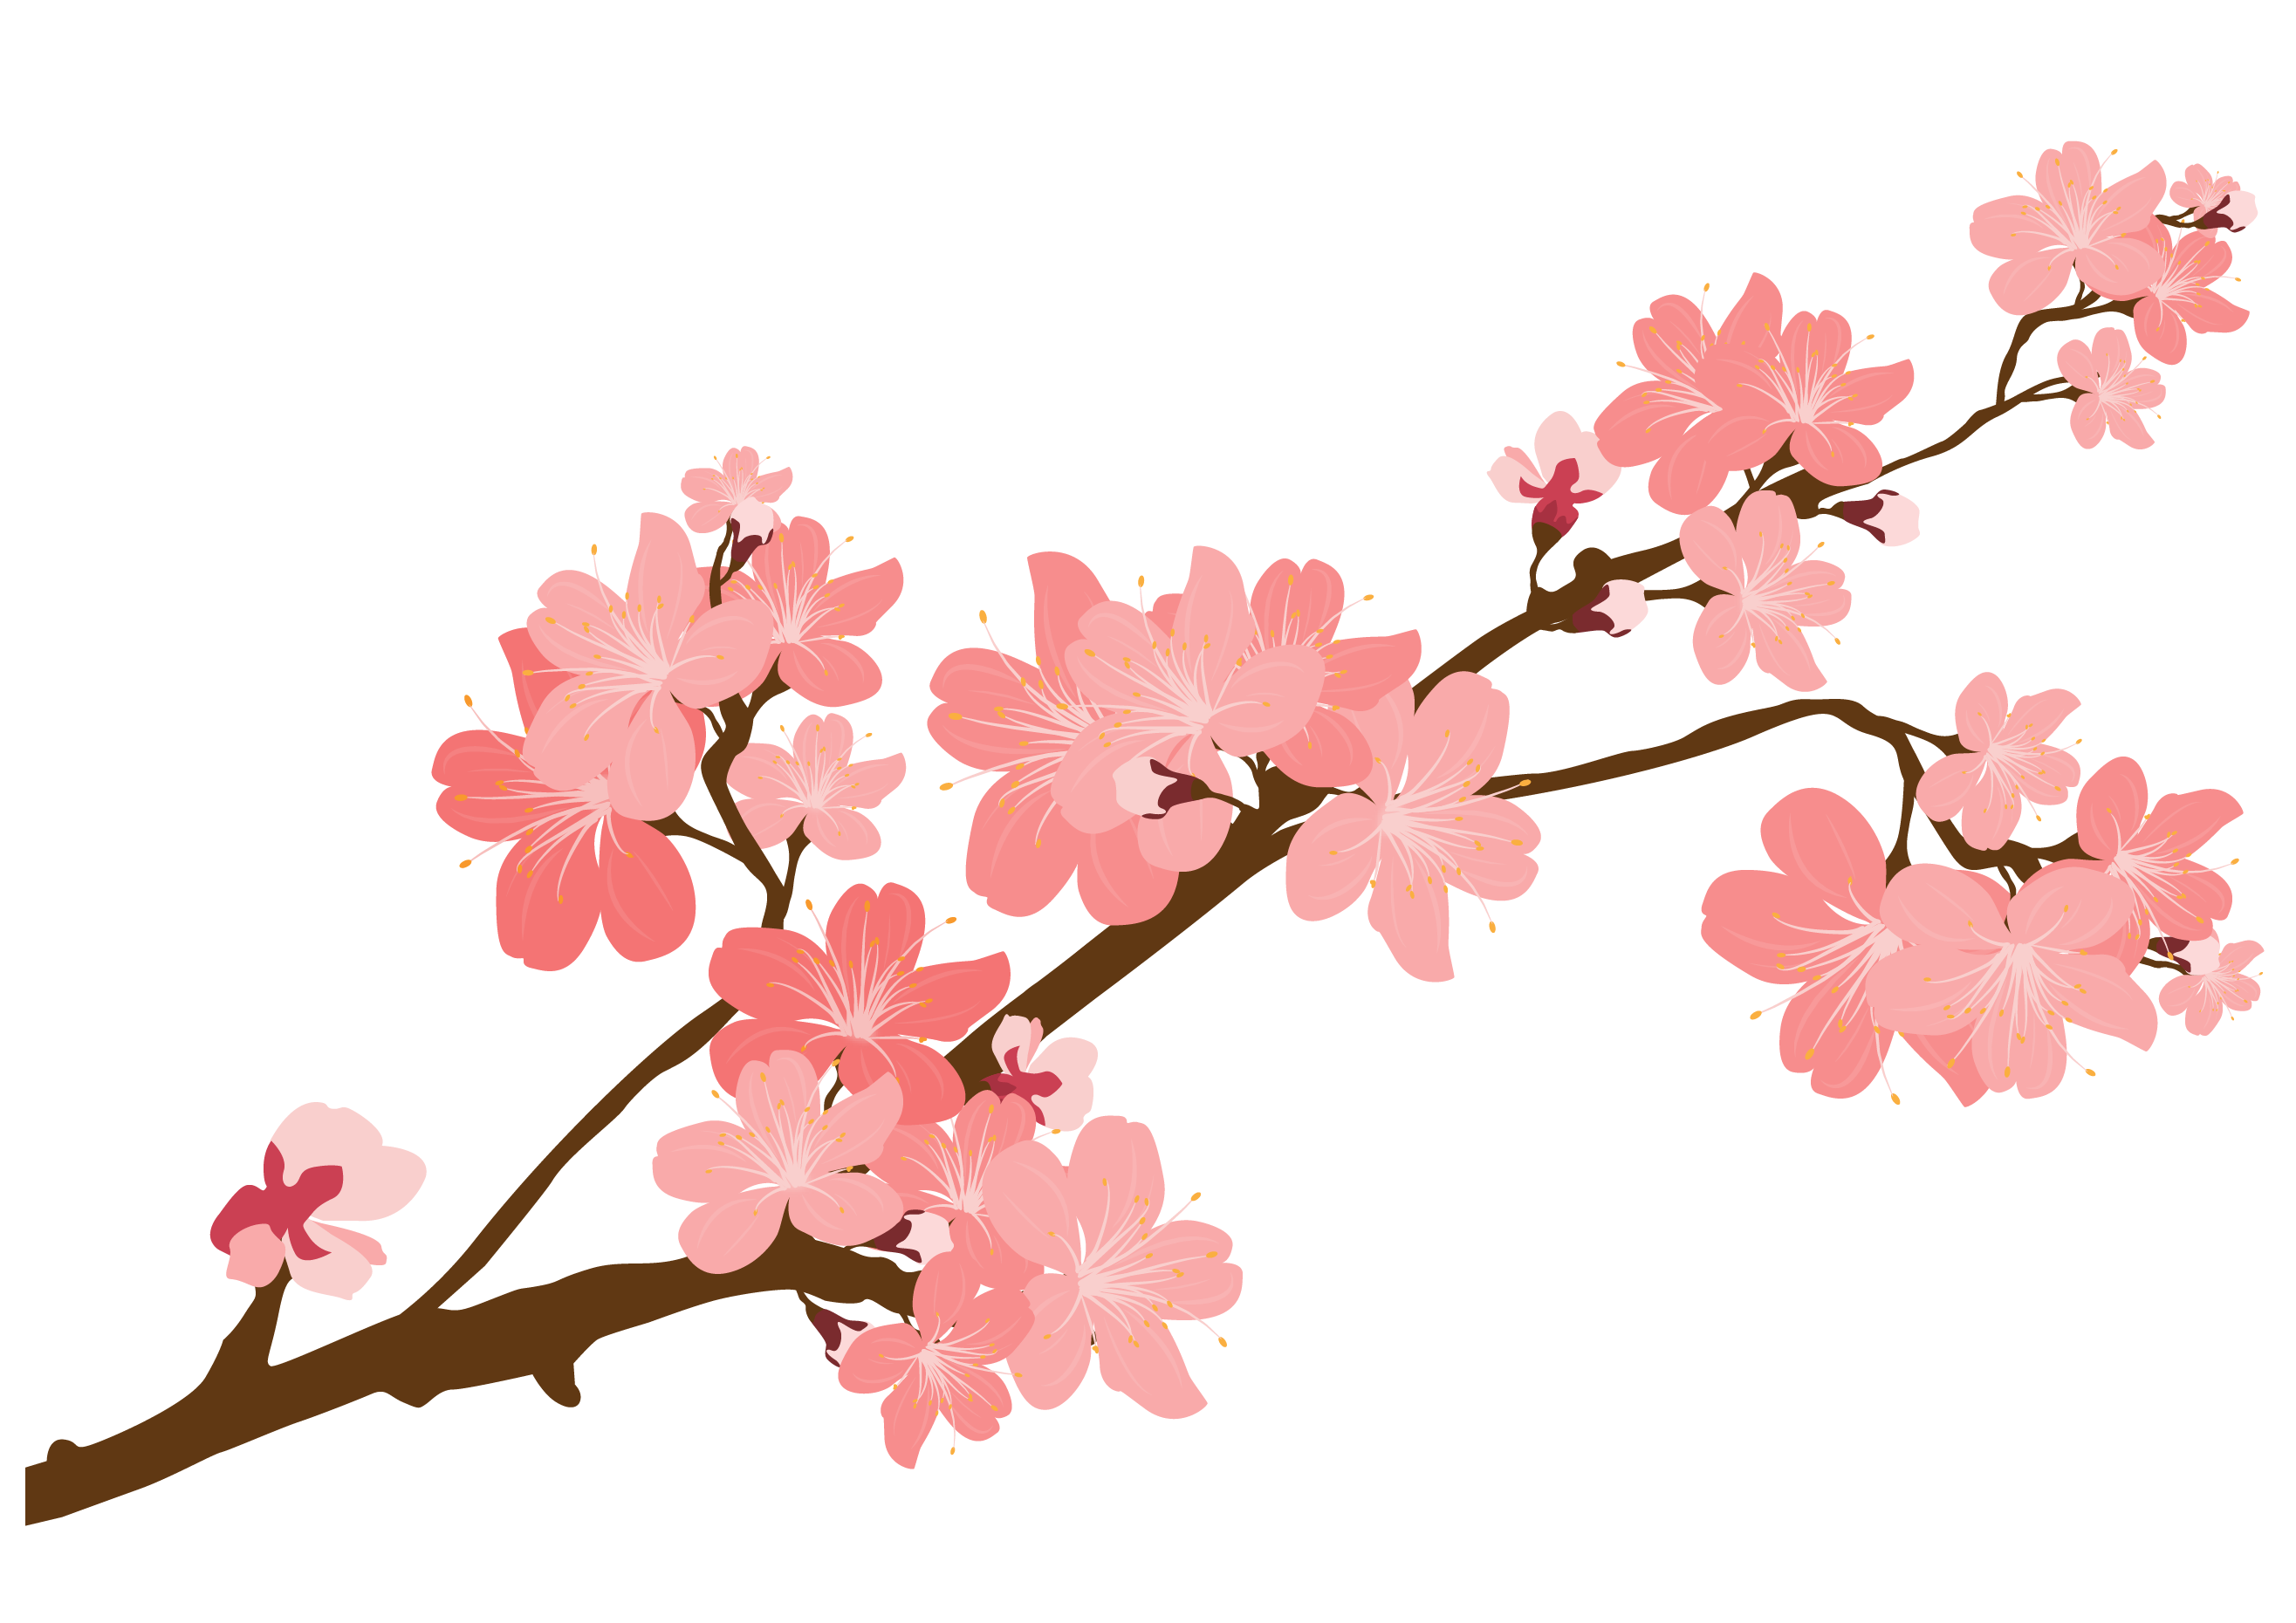 Sakura flower clipart clipart library Cherry Blossom Clipart at GetDrawings.com | Free for personal use ... clipart library